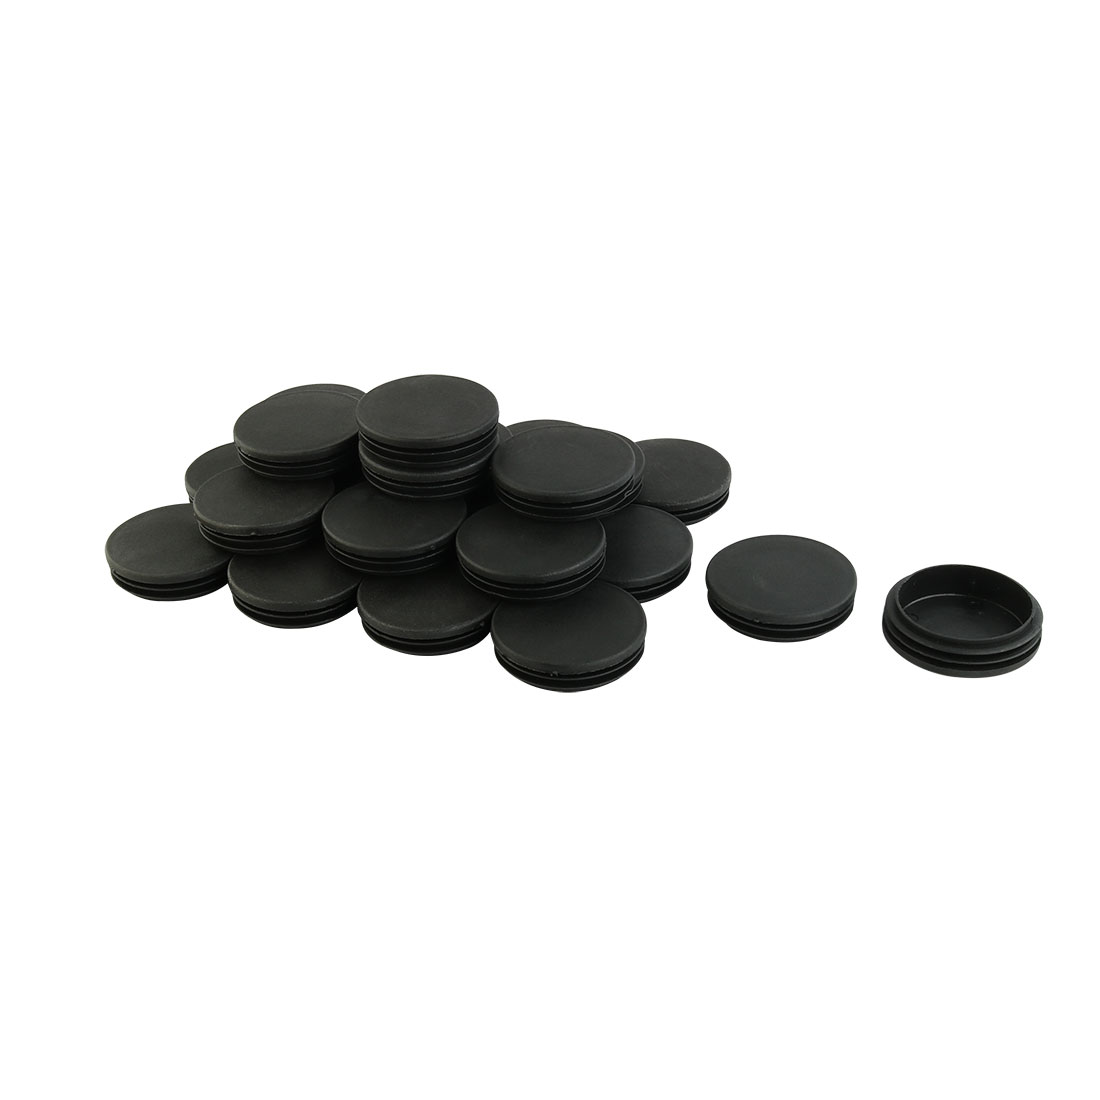 24 Pieces 70mm Diameter Black Plastic Blanking End Cap Round Tube Tube Inserts